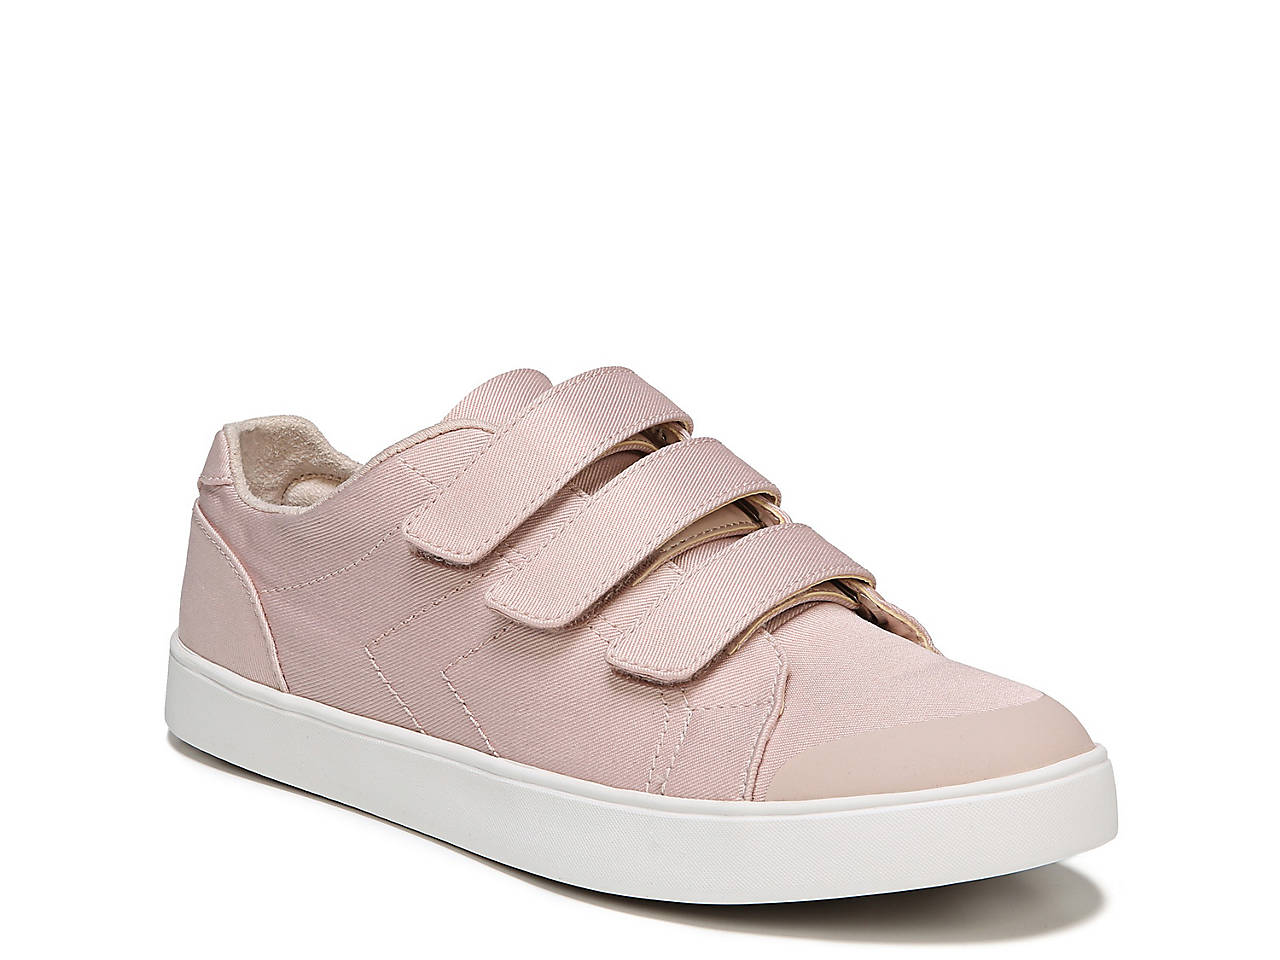 Madi Sneaker by Dr. Scholl's